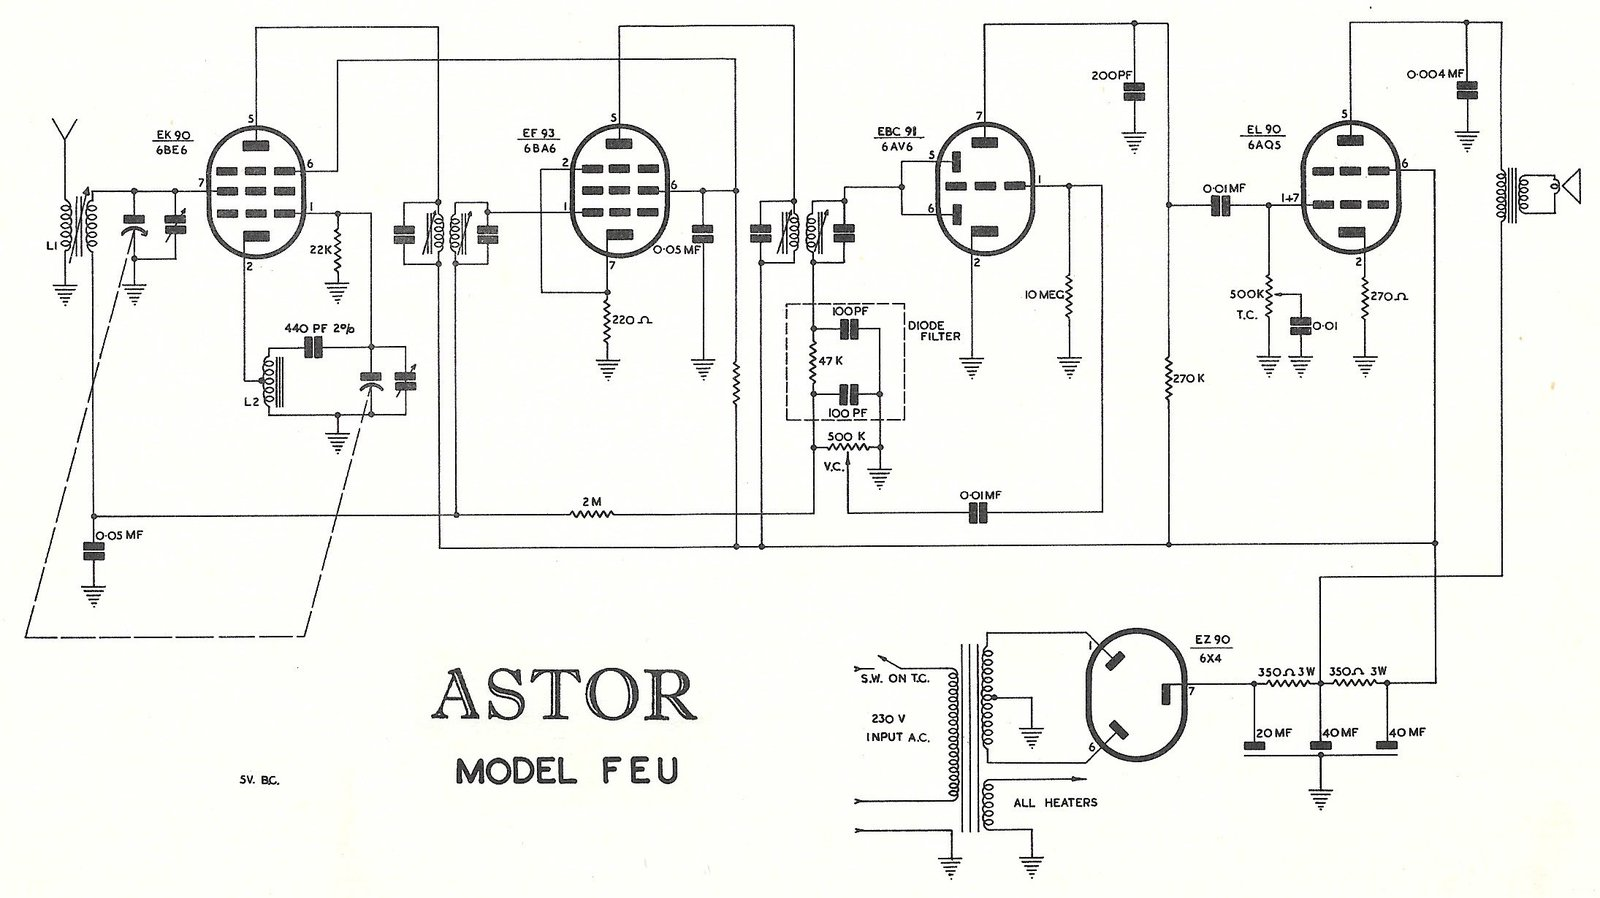 1959 Astor FEU / Columbus and Astor 525 Schematic